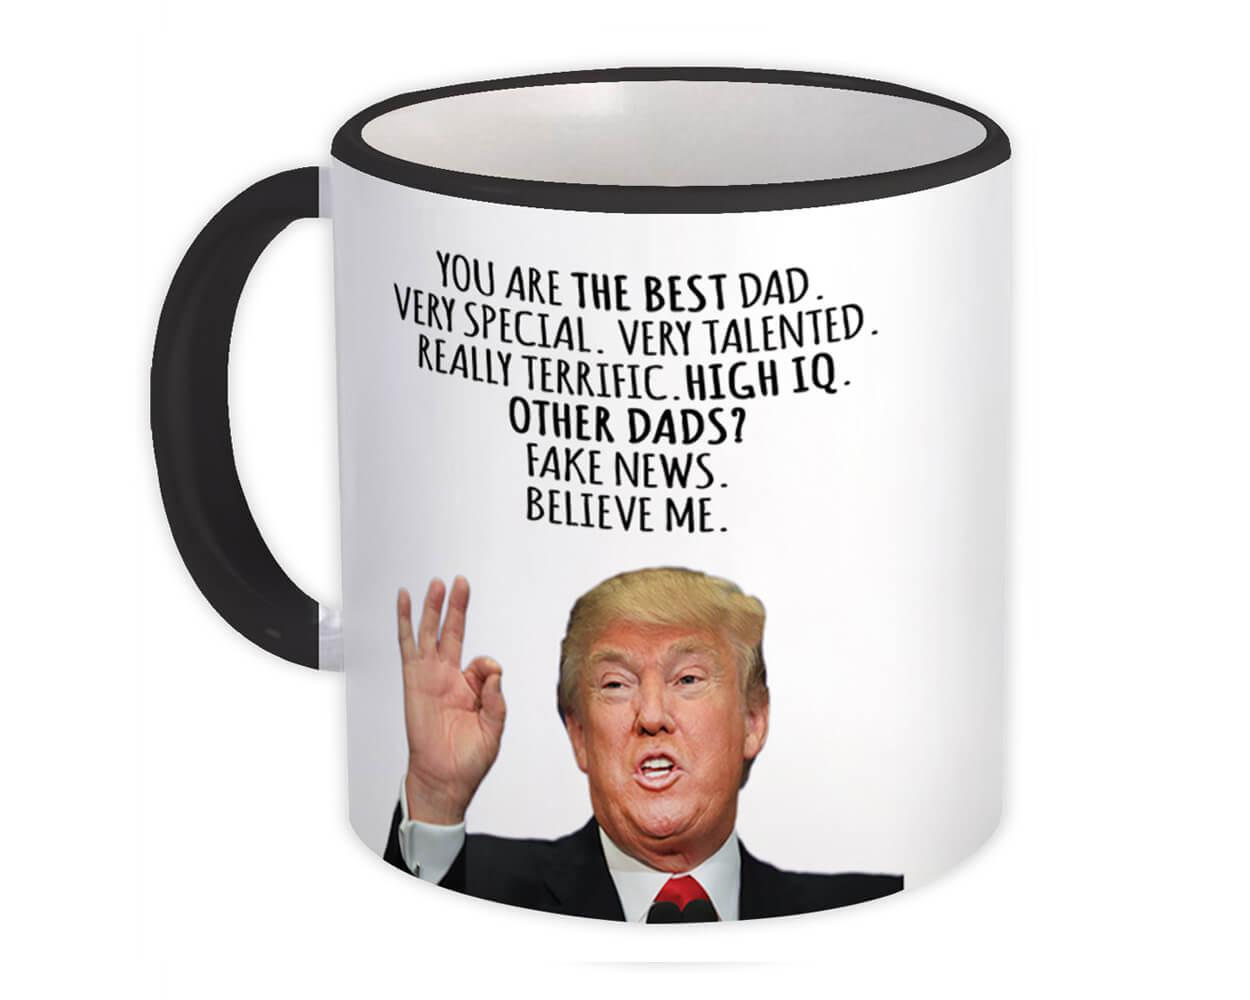 Gift for DAD : Gift Mug Donald Trump The Best DAD Funny FATHERS DAY Christmas